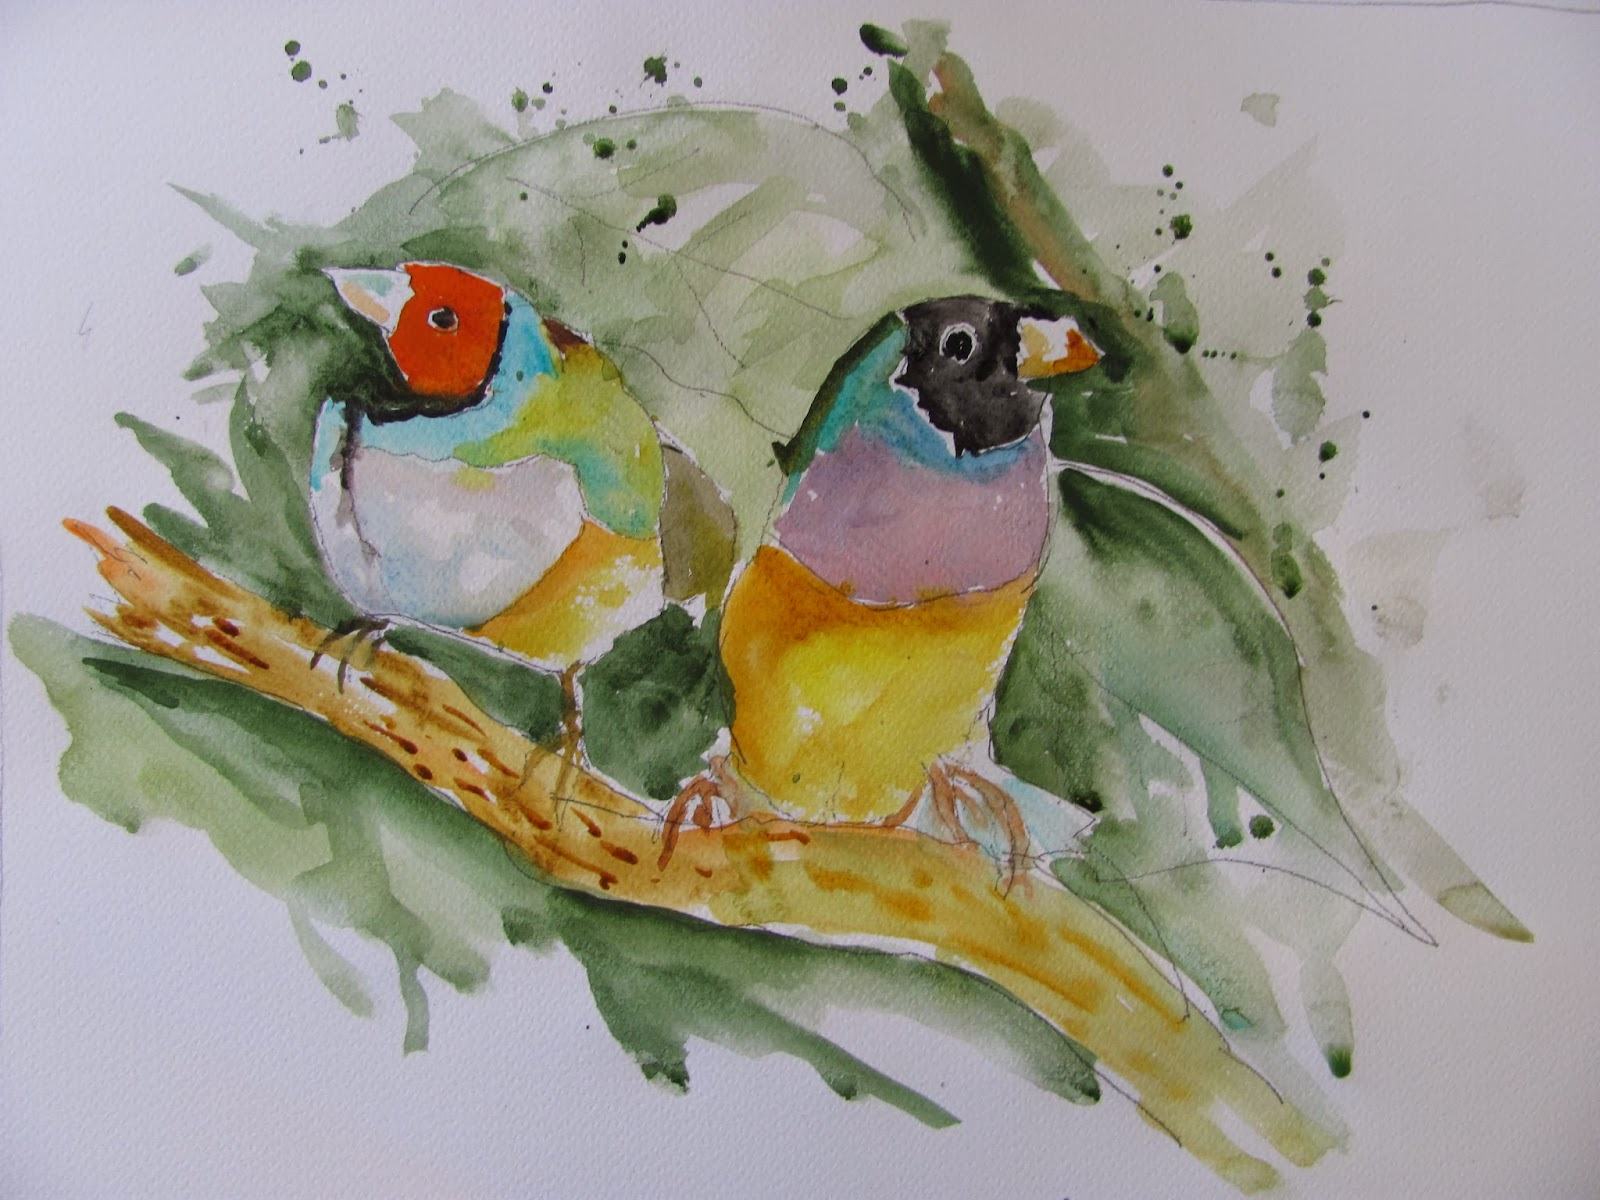 The Watercolour Log Painting Colorful Birds For Fun